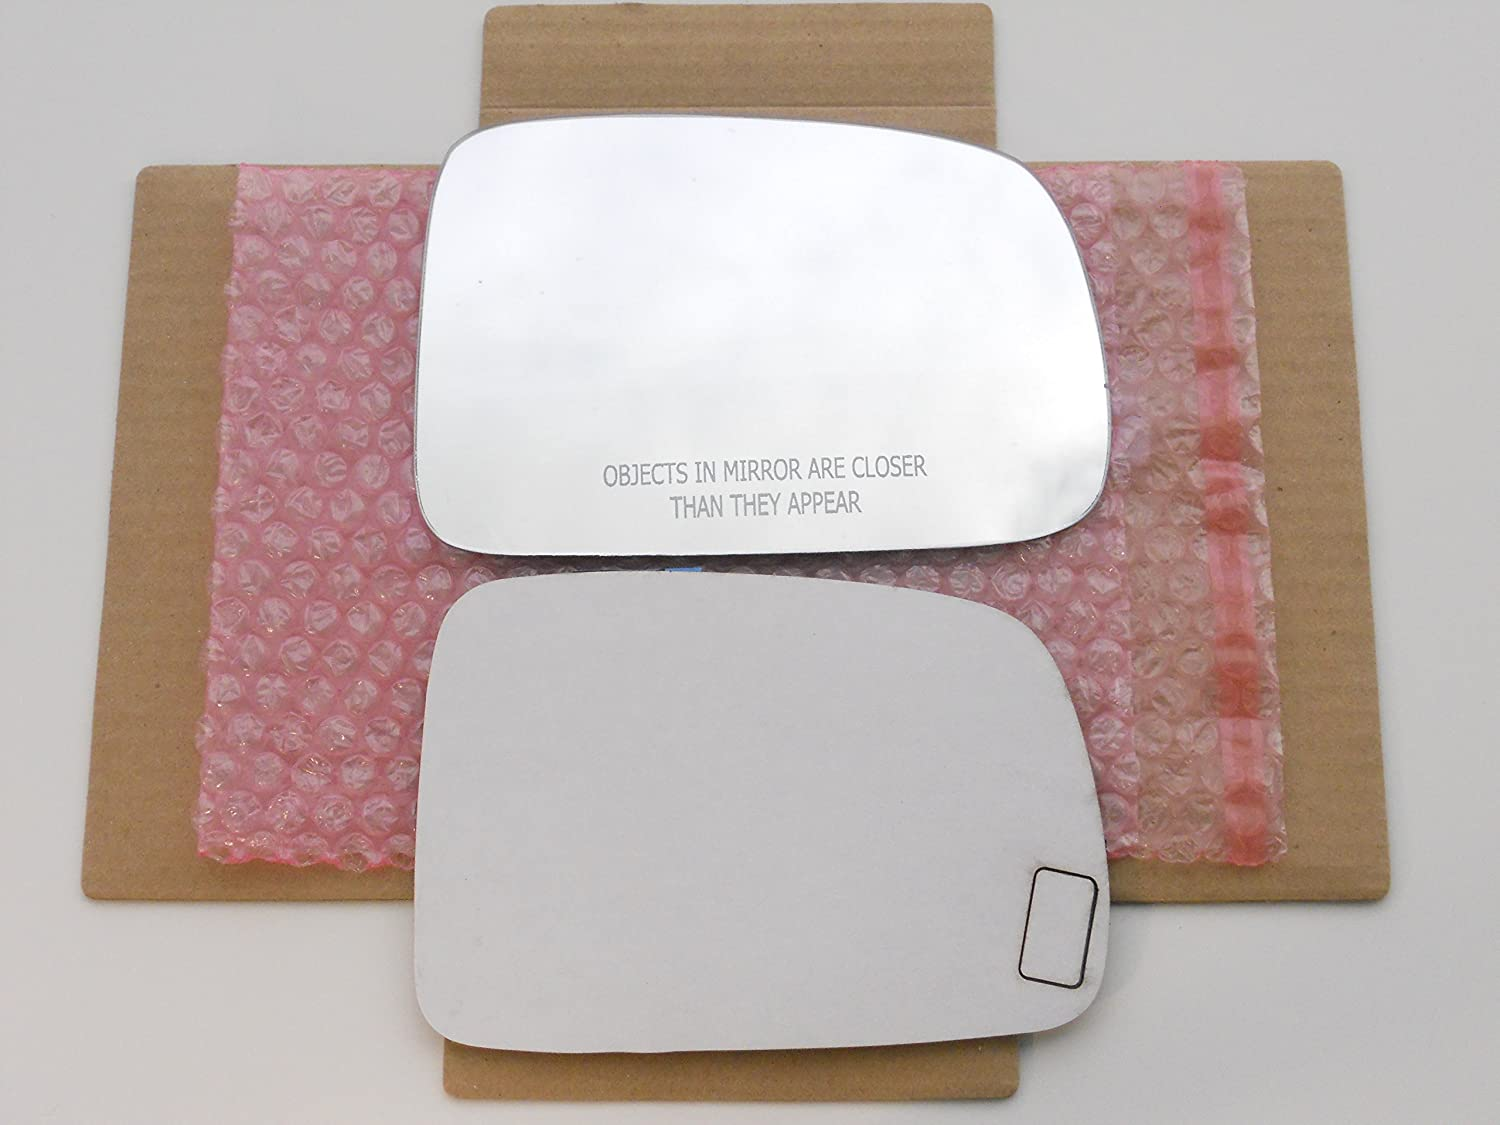 New Replacement Mirror Glass with FULL SIZE ADHESIVE for 1997-2006 HONDA CR-V CRV Passenger Side View Right RH